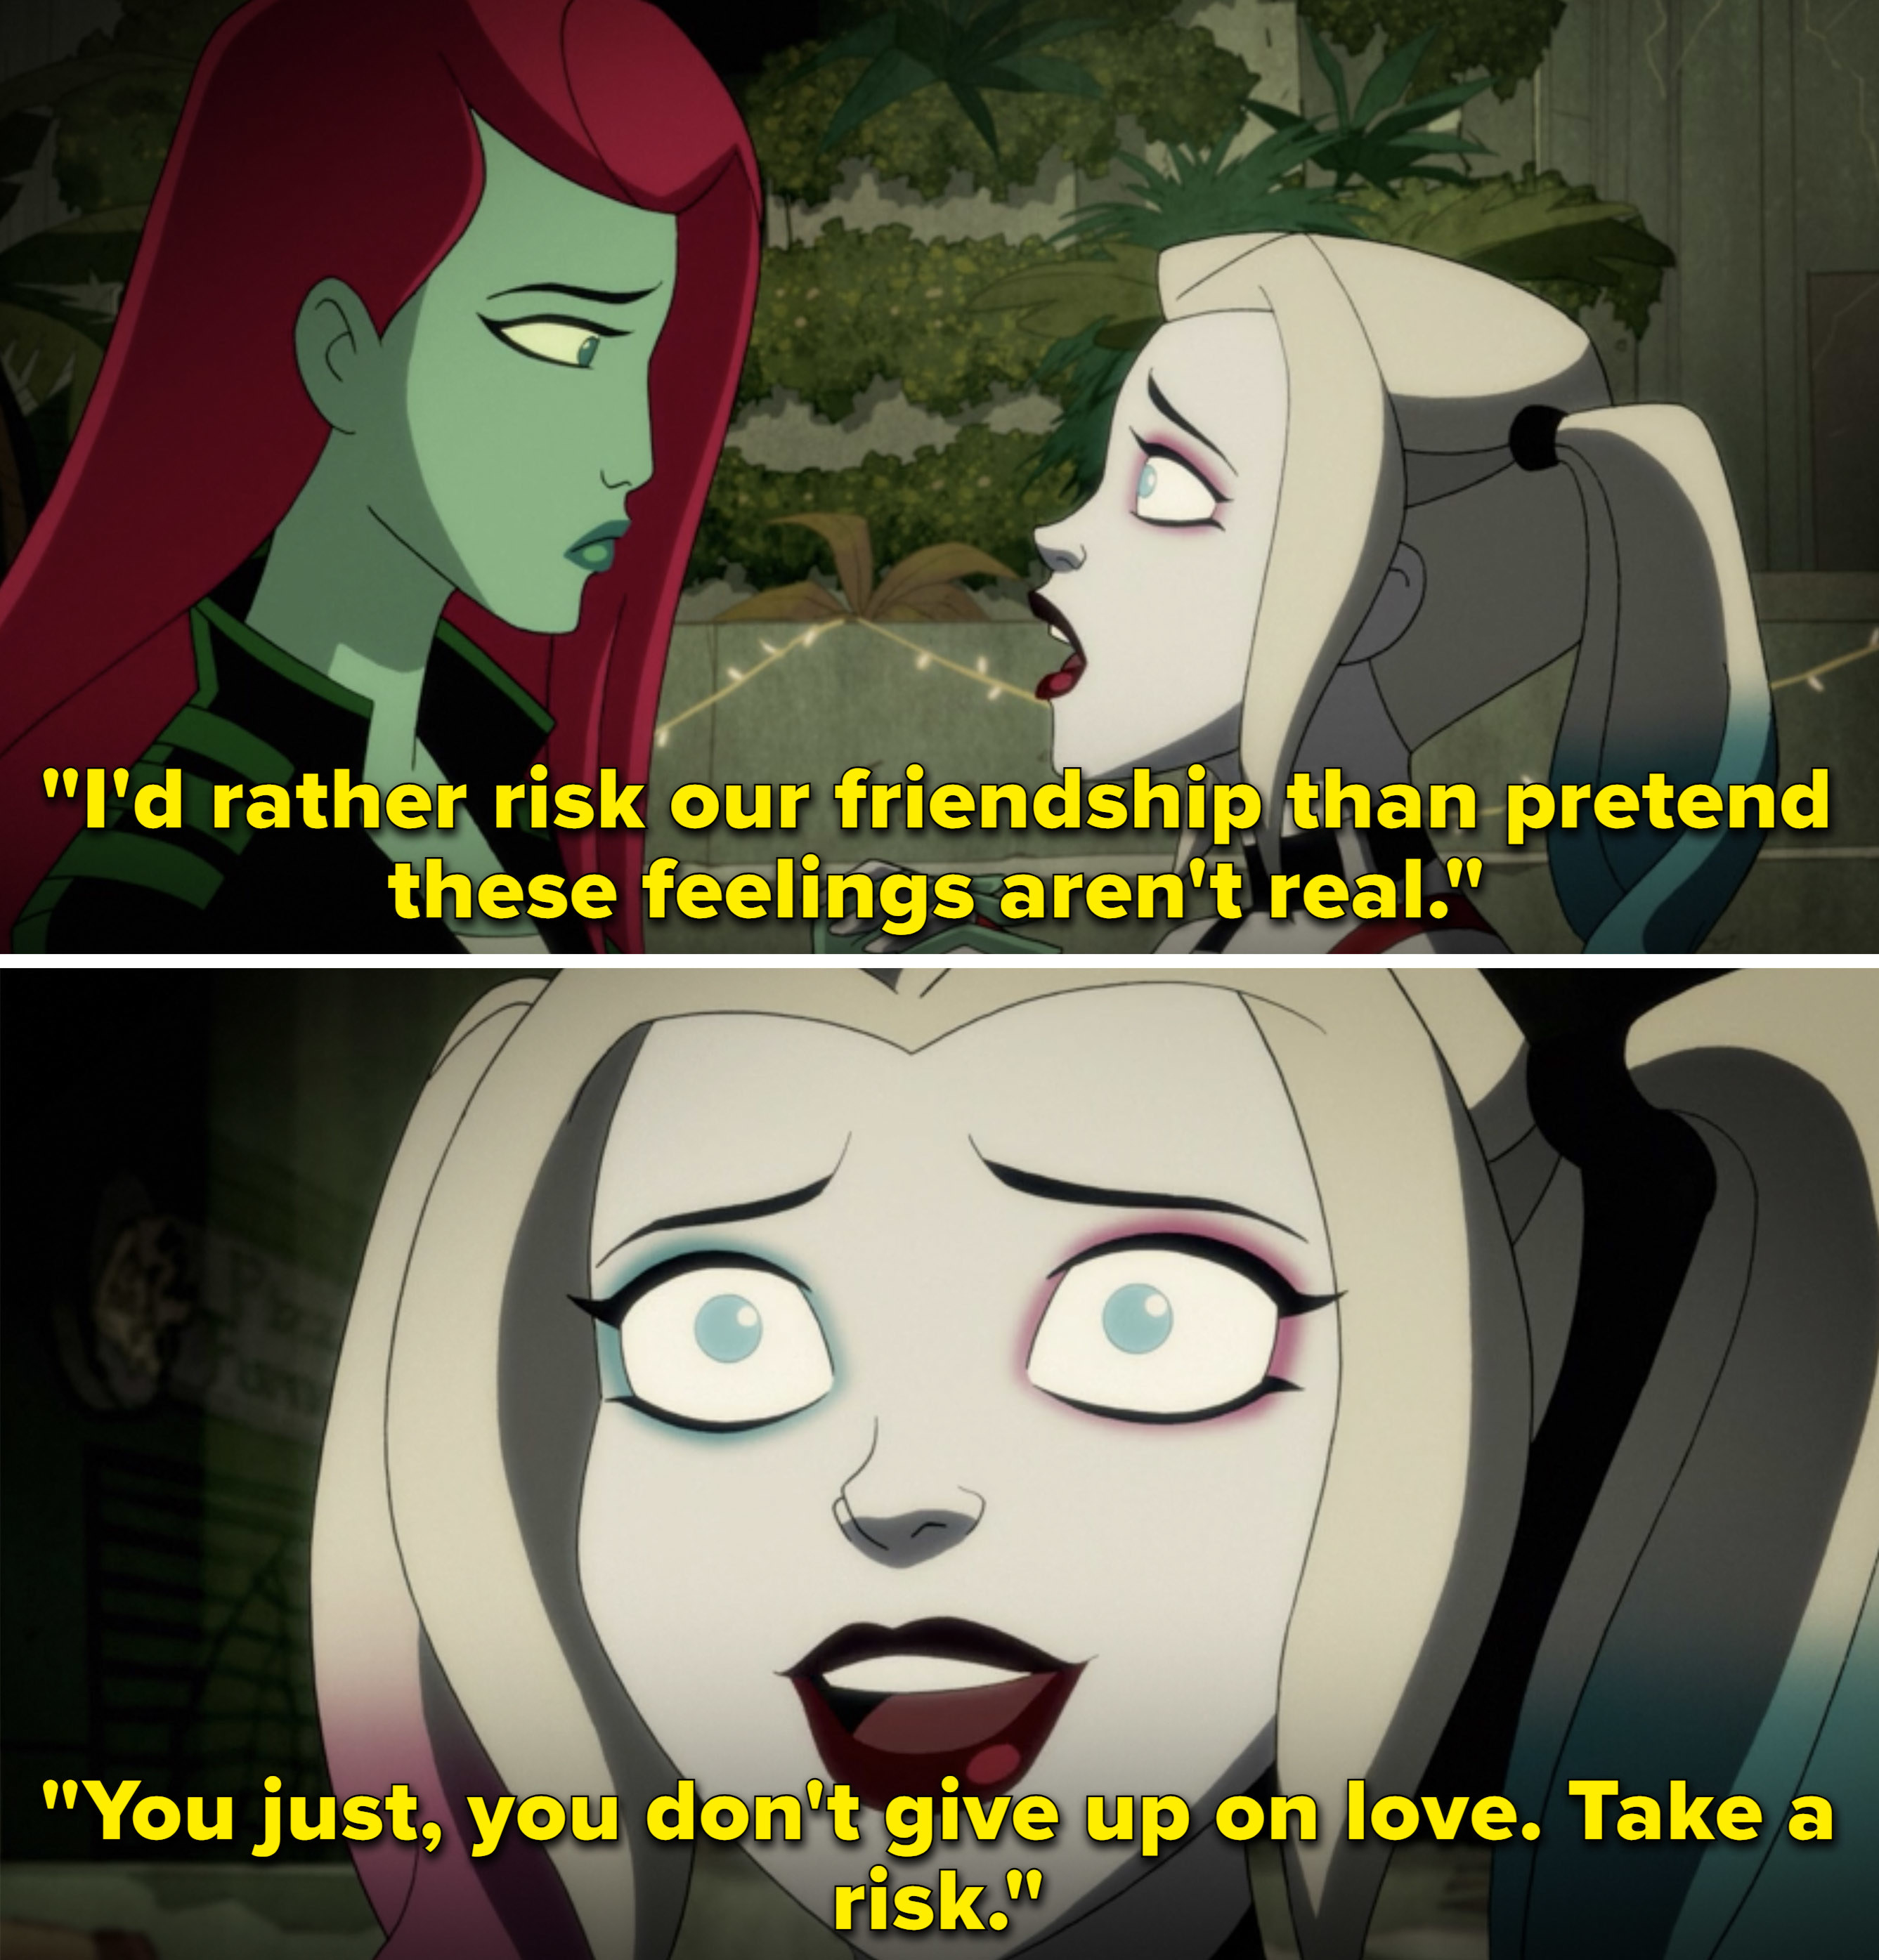 Harley telling Ivy that she'd risk their friendship for love